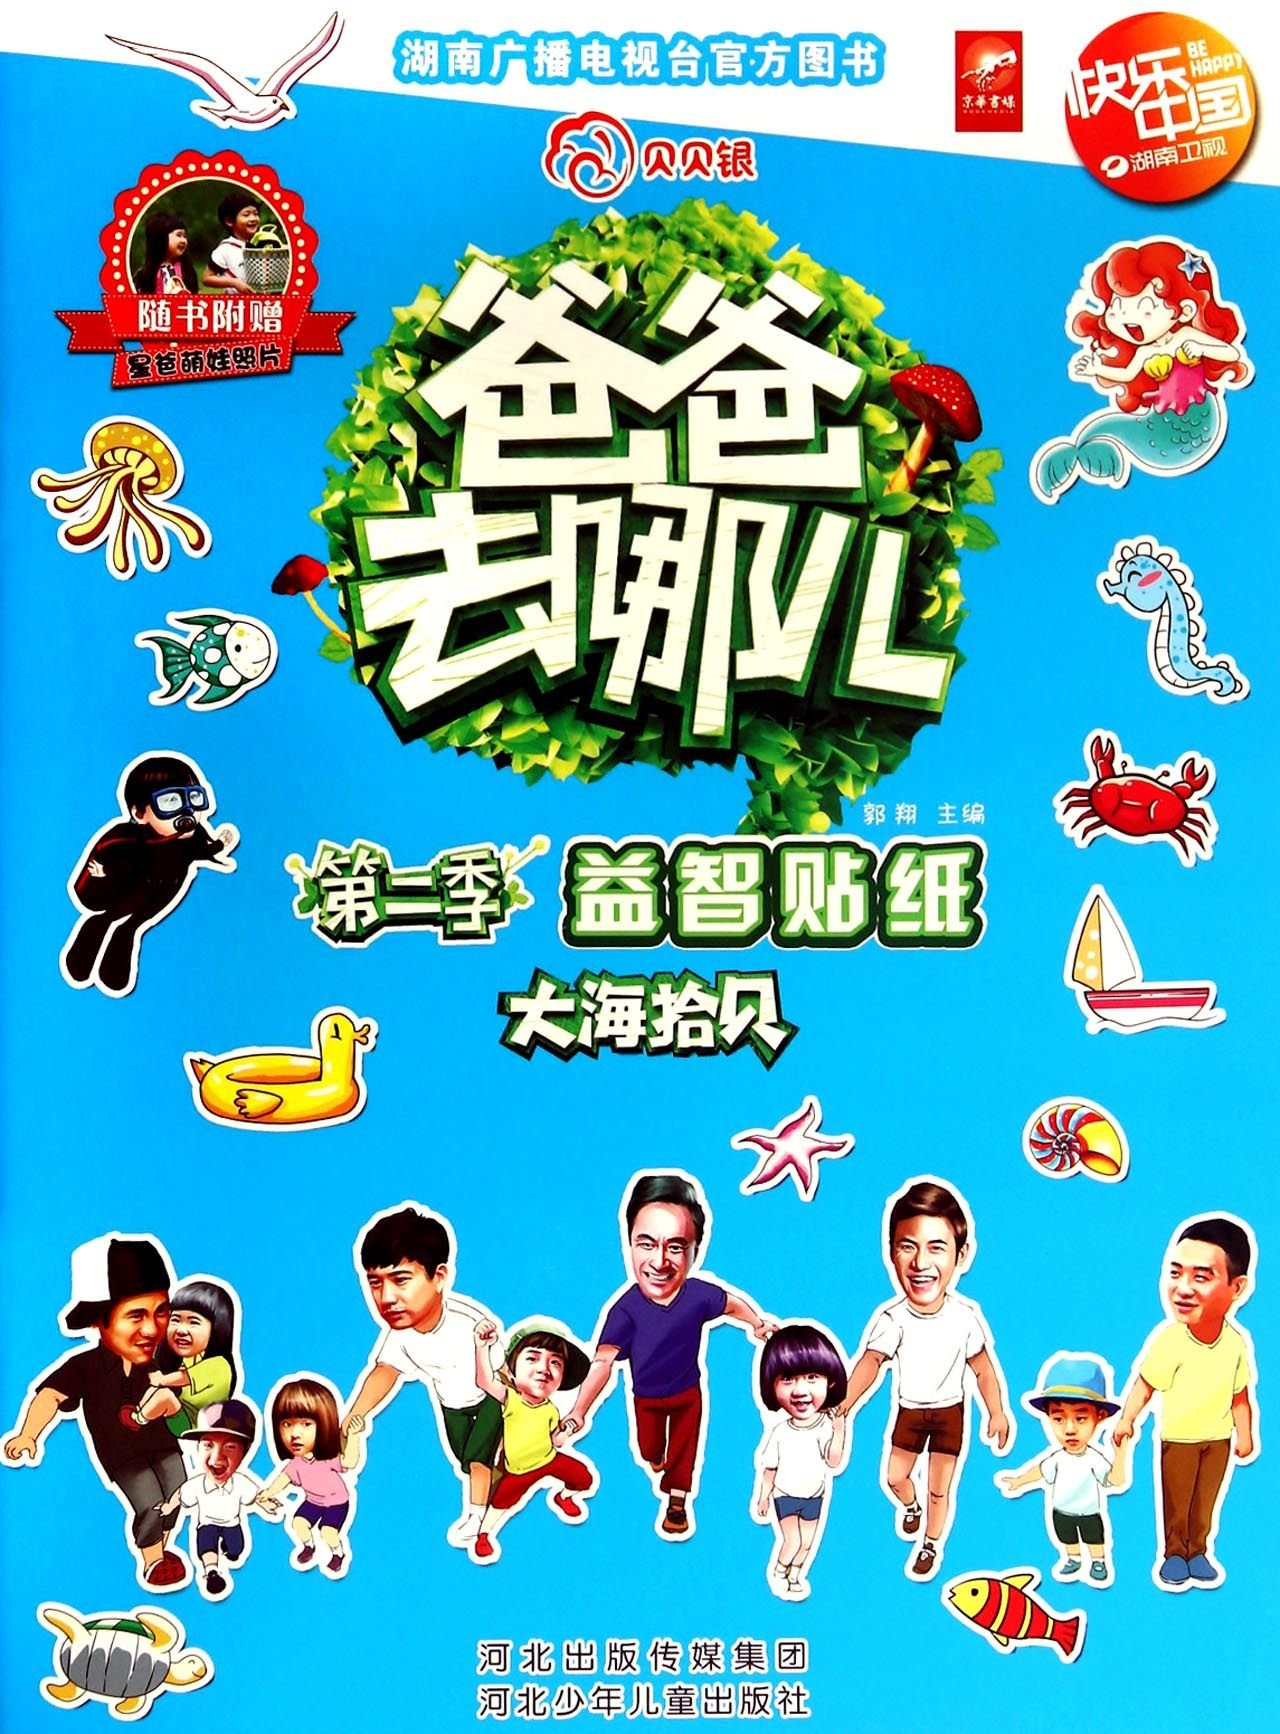 Read Online Where Dad Puzzle stickers - Sea cockle (each were donated this adorable baby photo star dad. suits and more sent autographed photos Collector's Edition collective expression containing Meng doll stickers 200. other stickers 1000.)(Chinese Edition) PDF